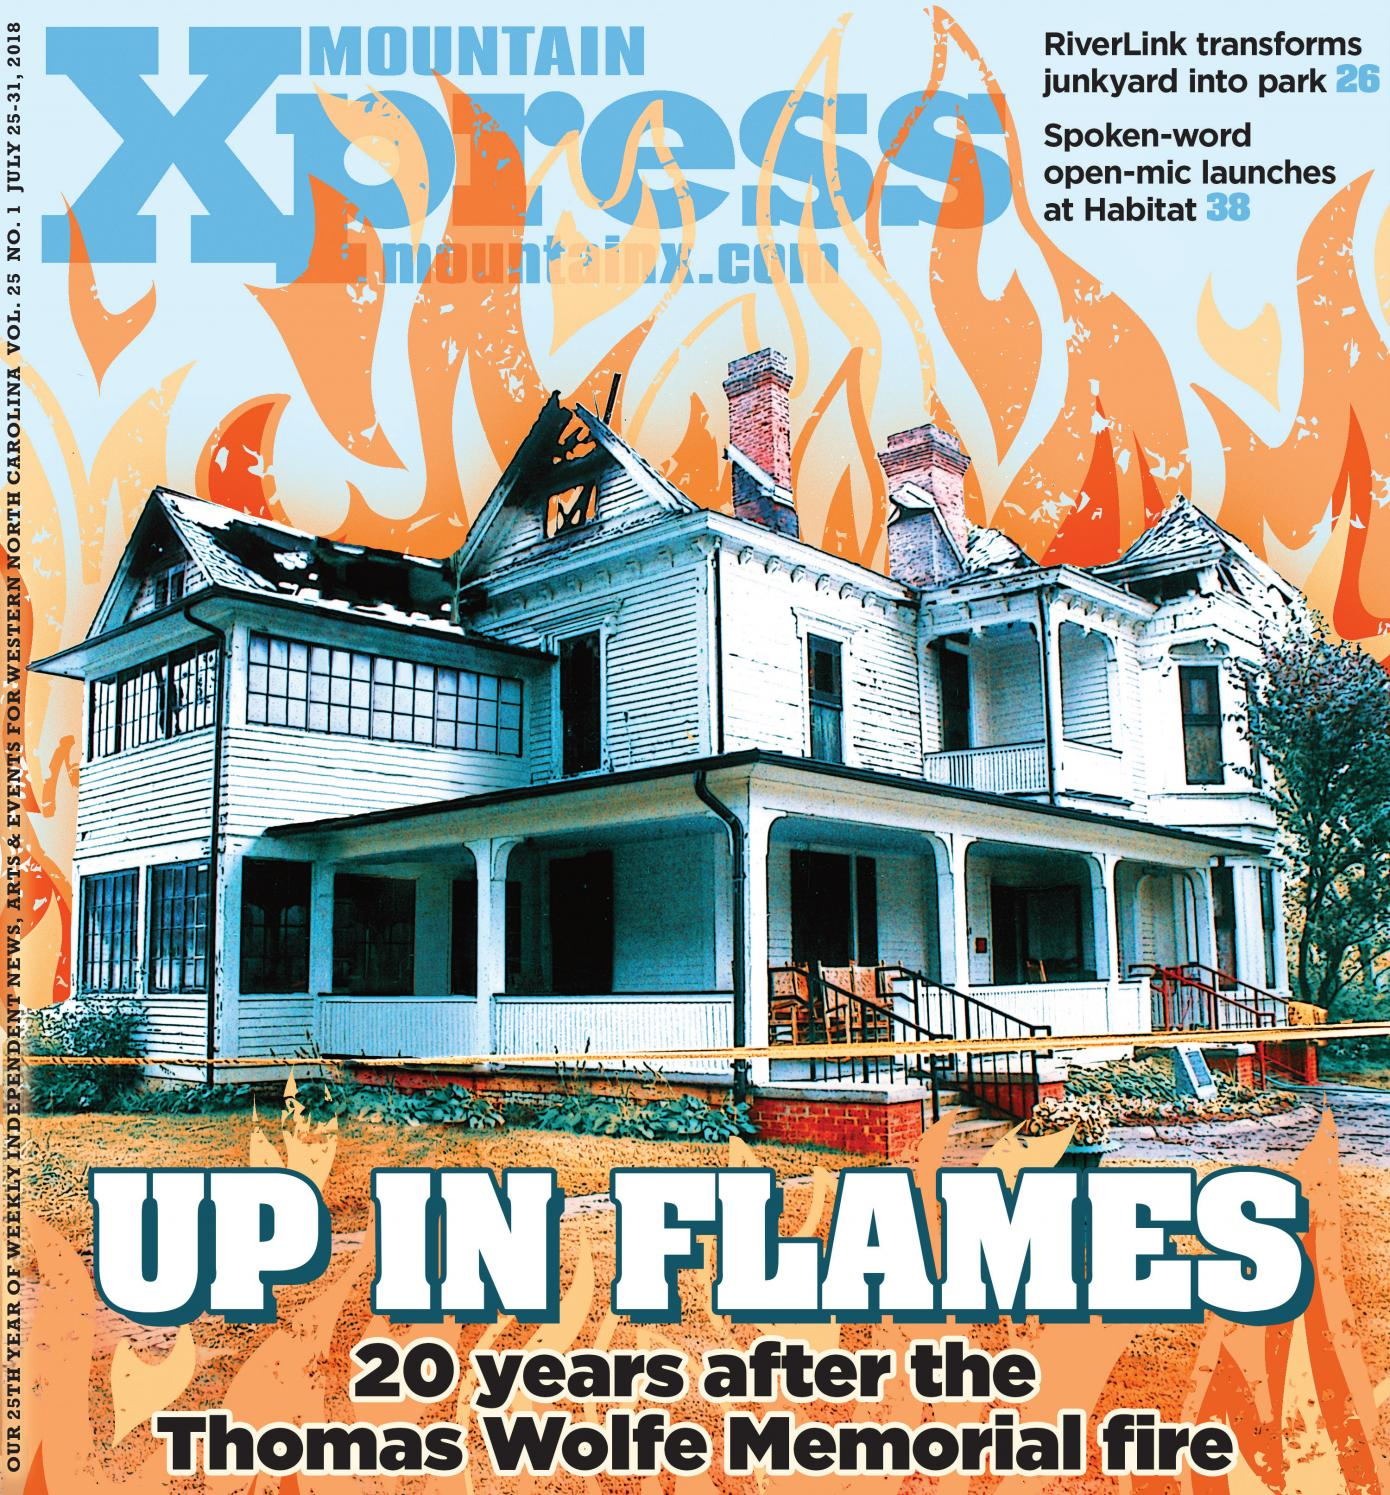 Mountain Xpress 07 25 18 by Mountain Xpress - issuu